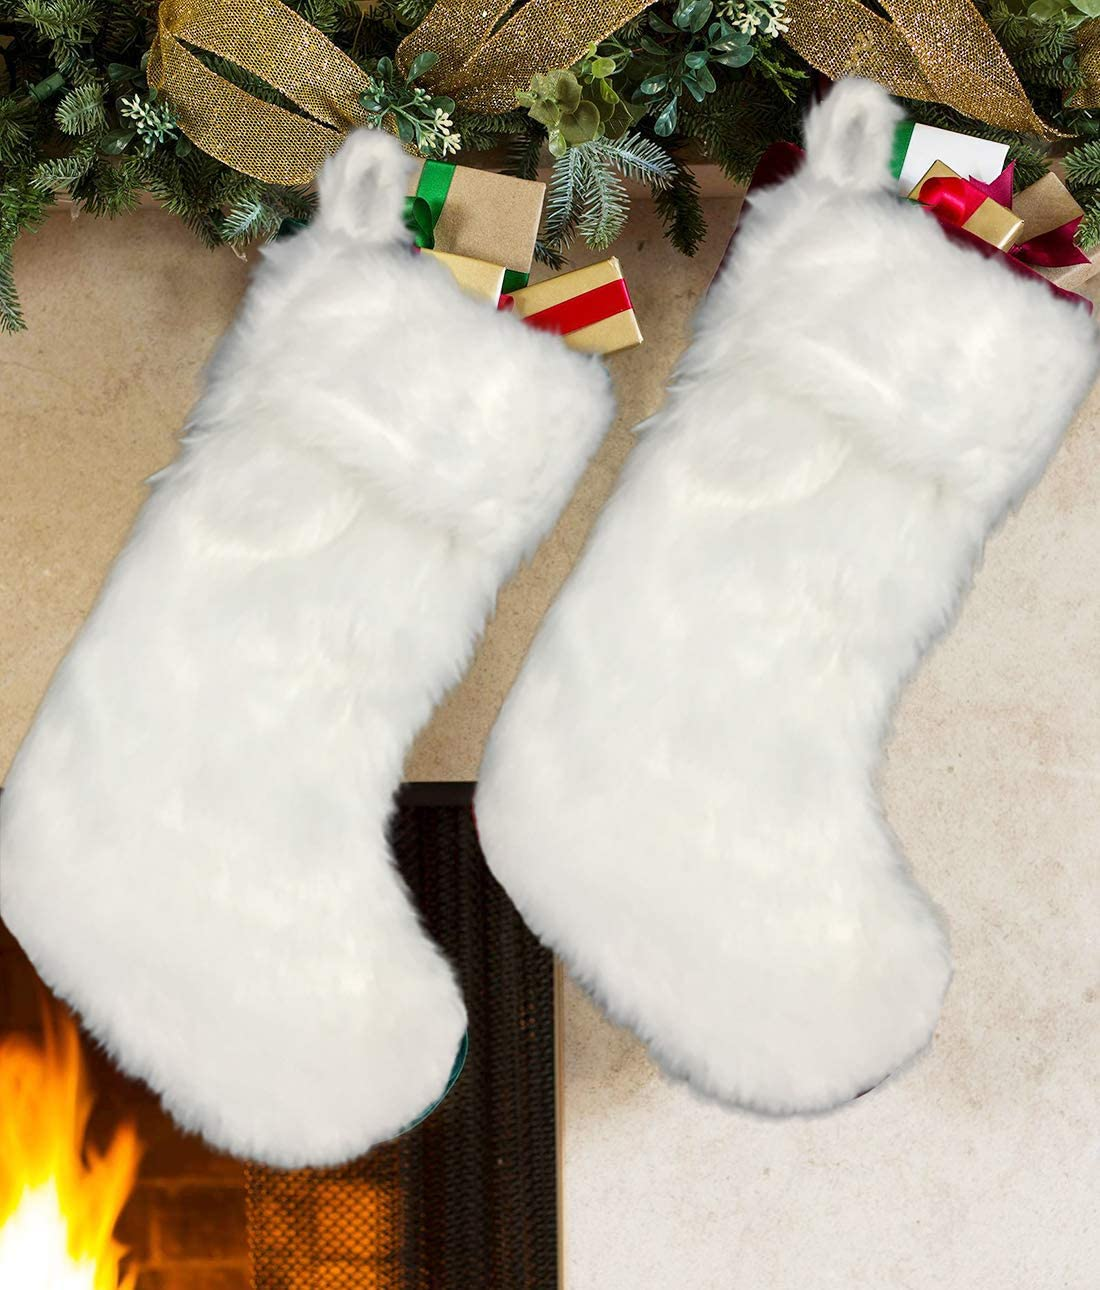 AISENO 2 Pack 18 Ranking TOP14 Inch Snowy White Christmas Stockings Faux Fur Daily bargain sale C